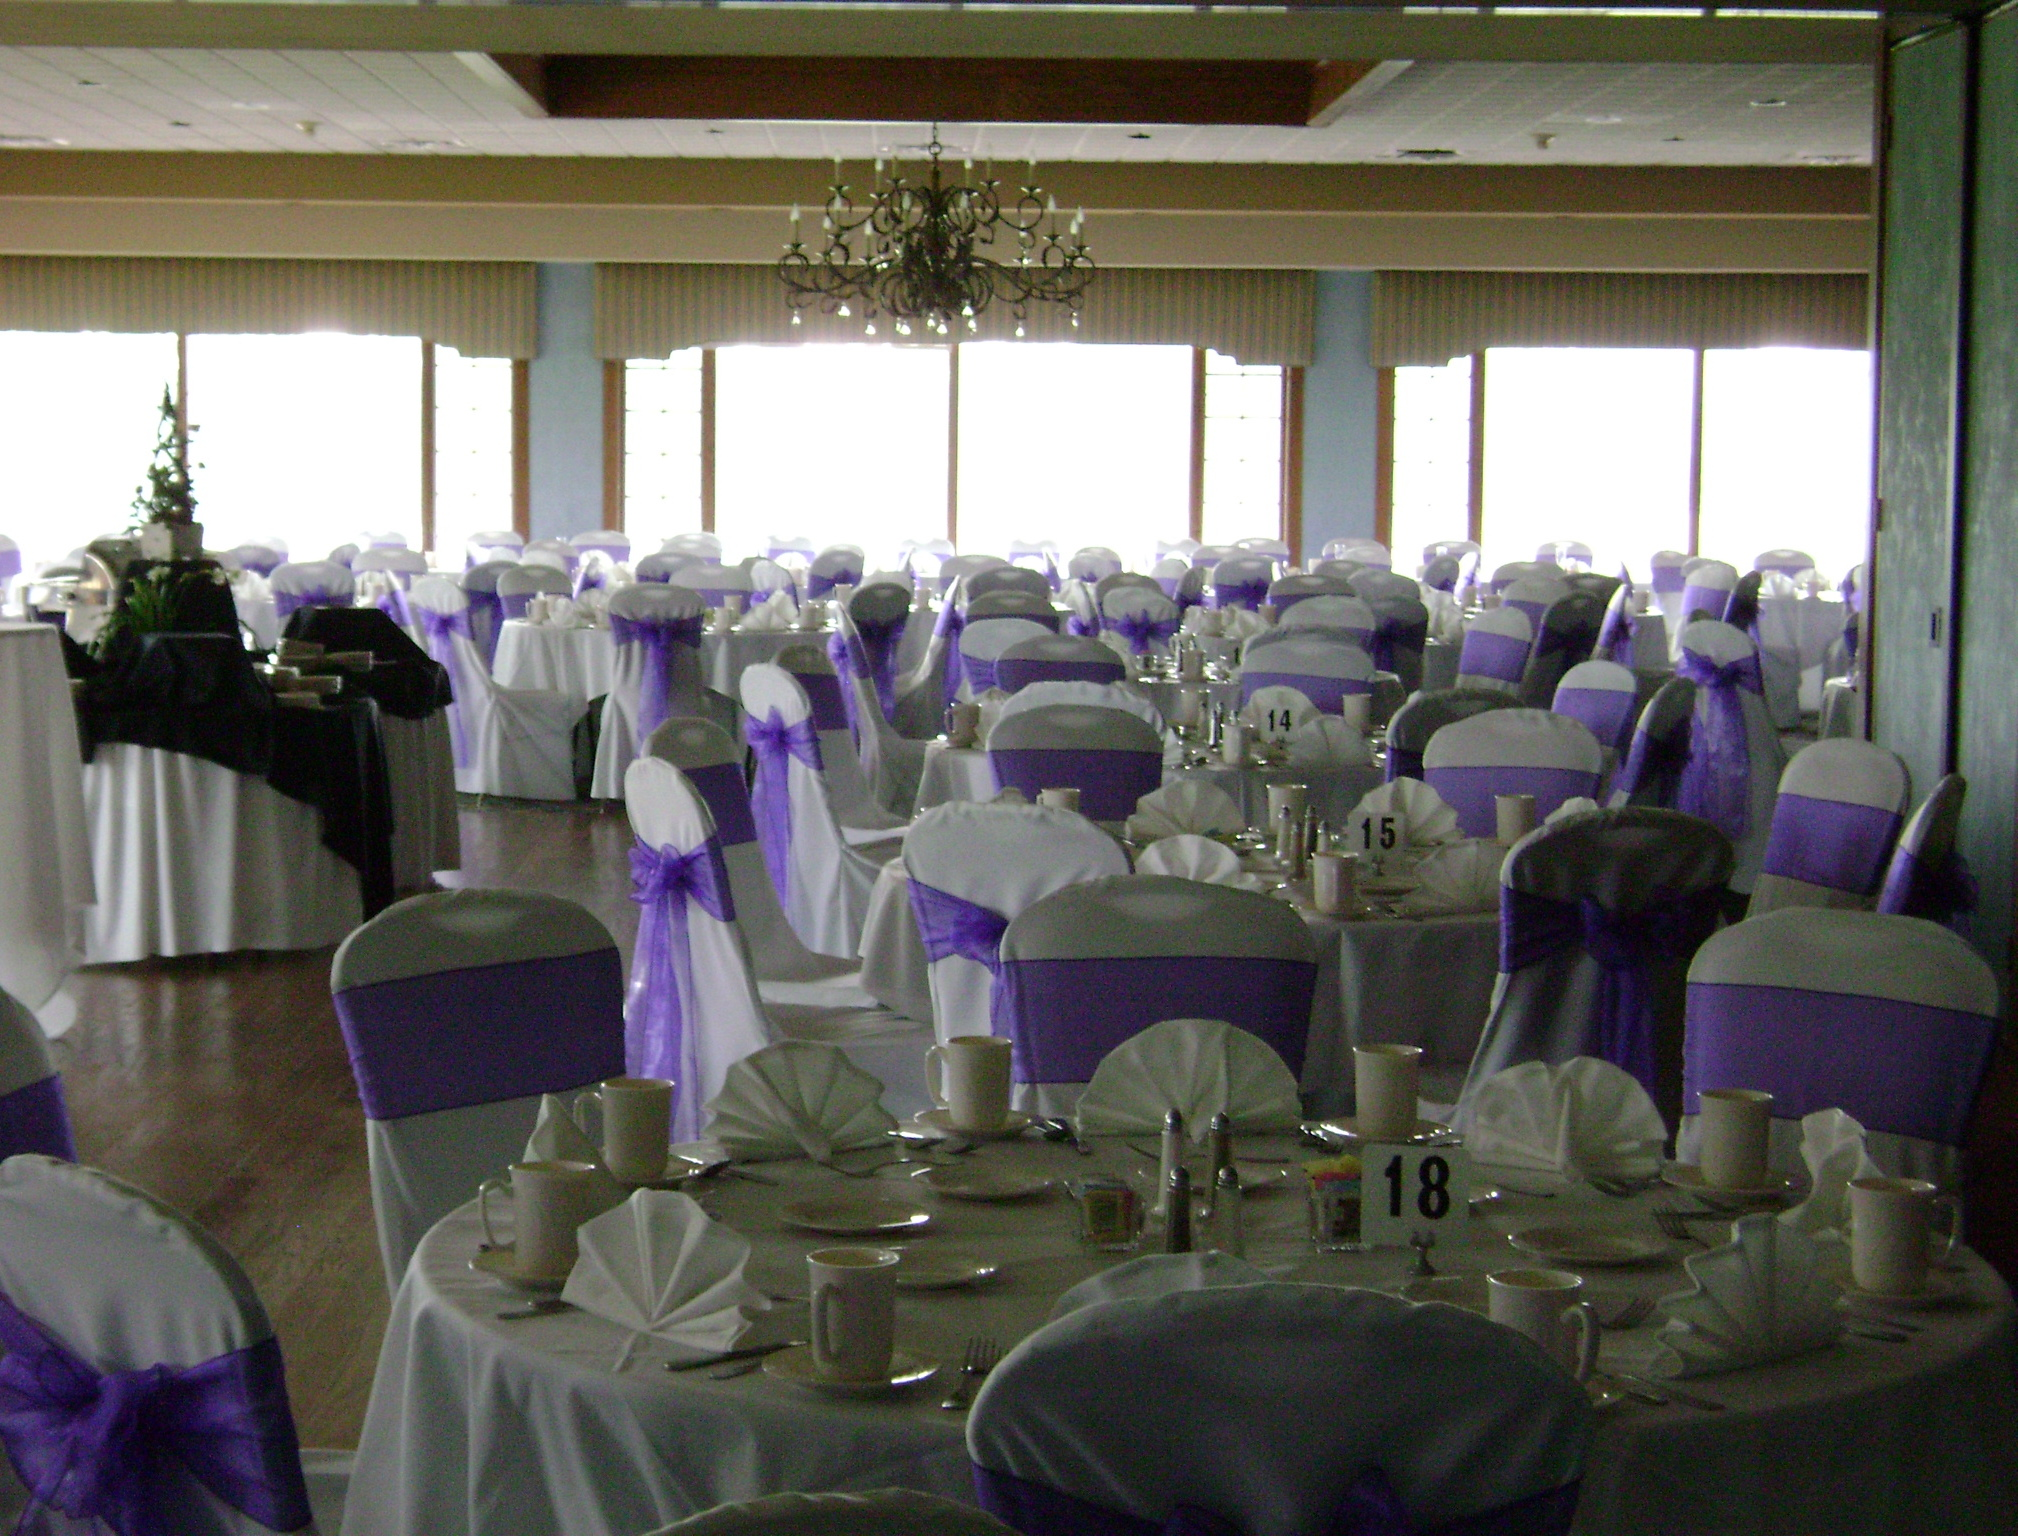 chair cover rentals dearborn mi power chairs covered by medicare fox hills plymouth